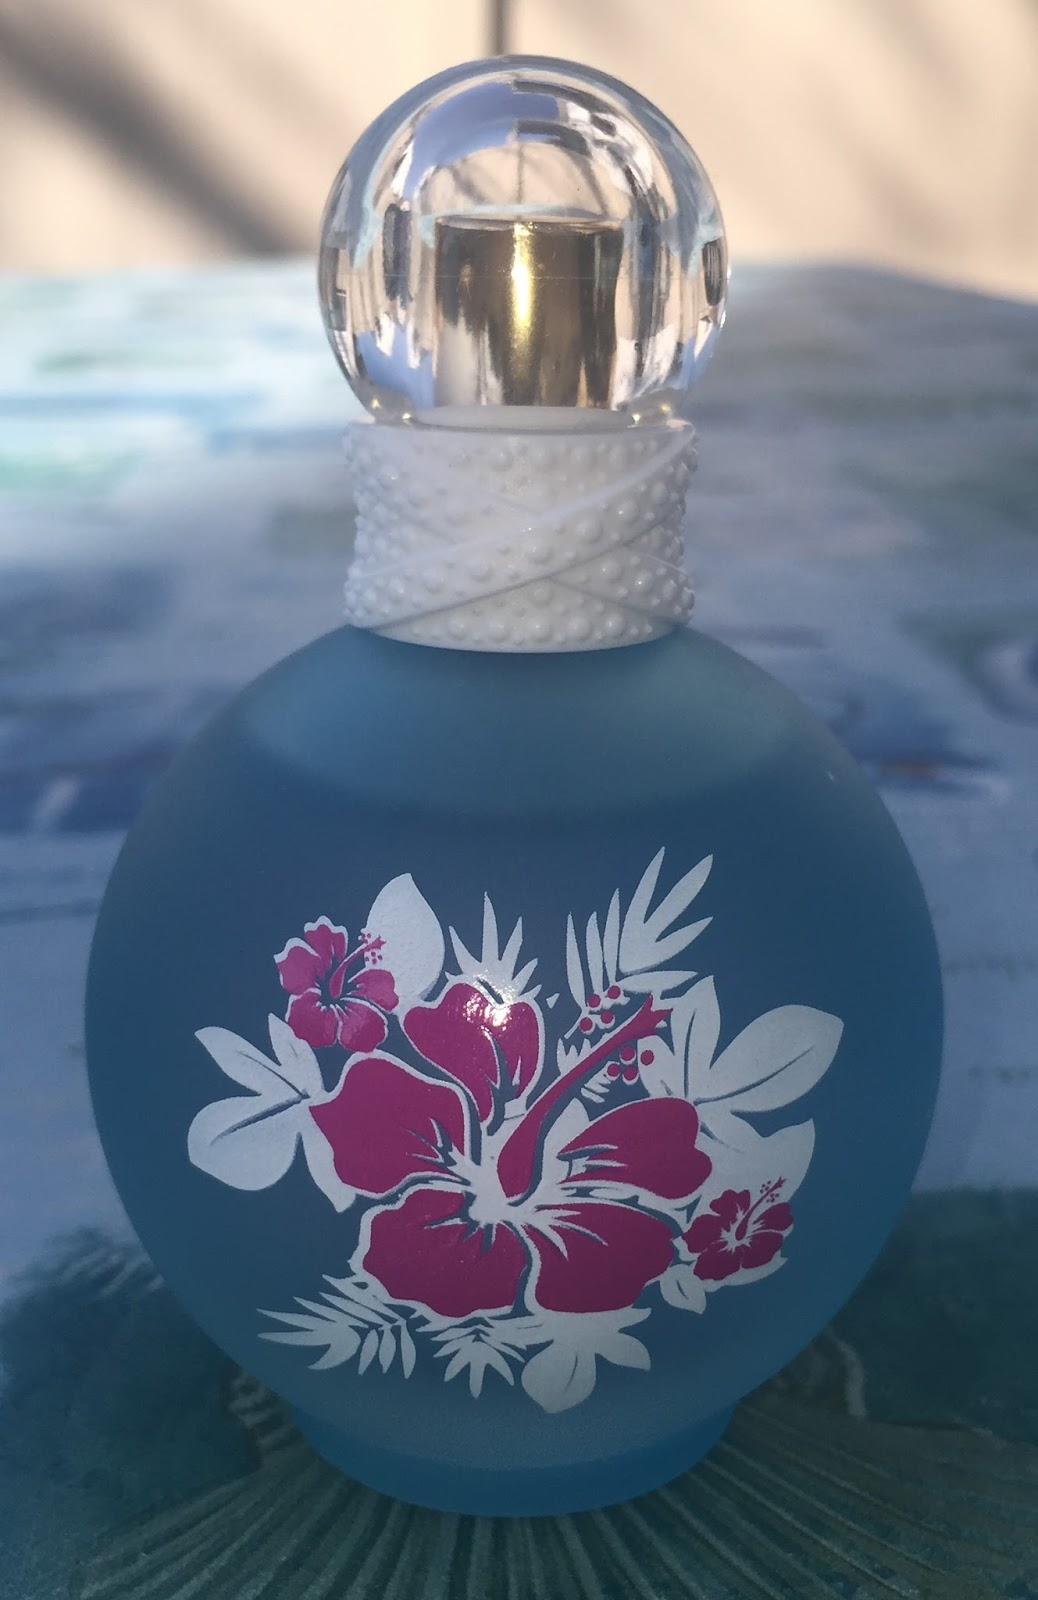 Britney spears maui fantasy perfume diane marys take on beauty as i mentioned earlier this scent reminds me of the beach and summer fragrantica says that britney wanted to create a fragrance that gives me the izmirmasajfo